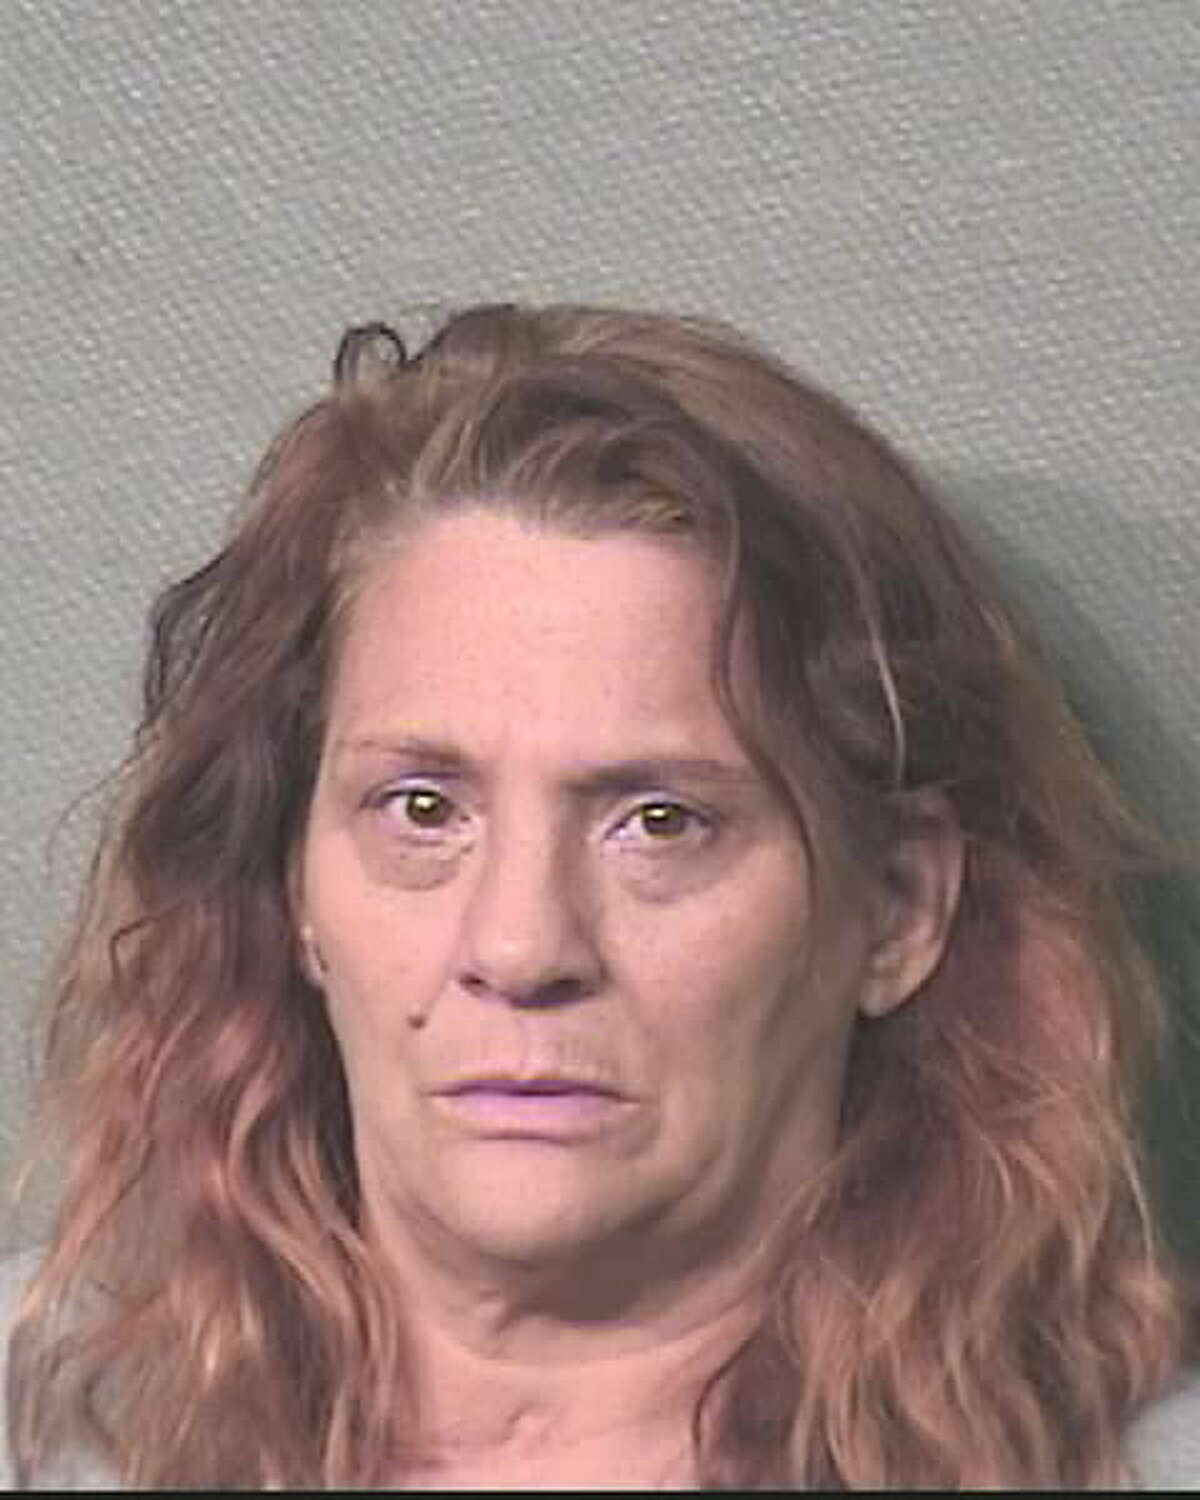 Teresa Ables was arrested Oct. 20, 2015 and charged with felony prostitution.